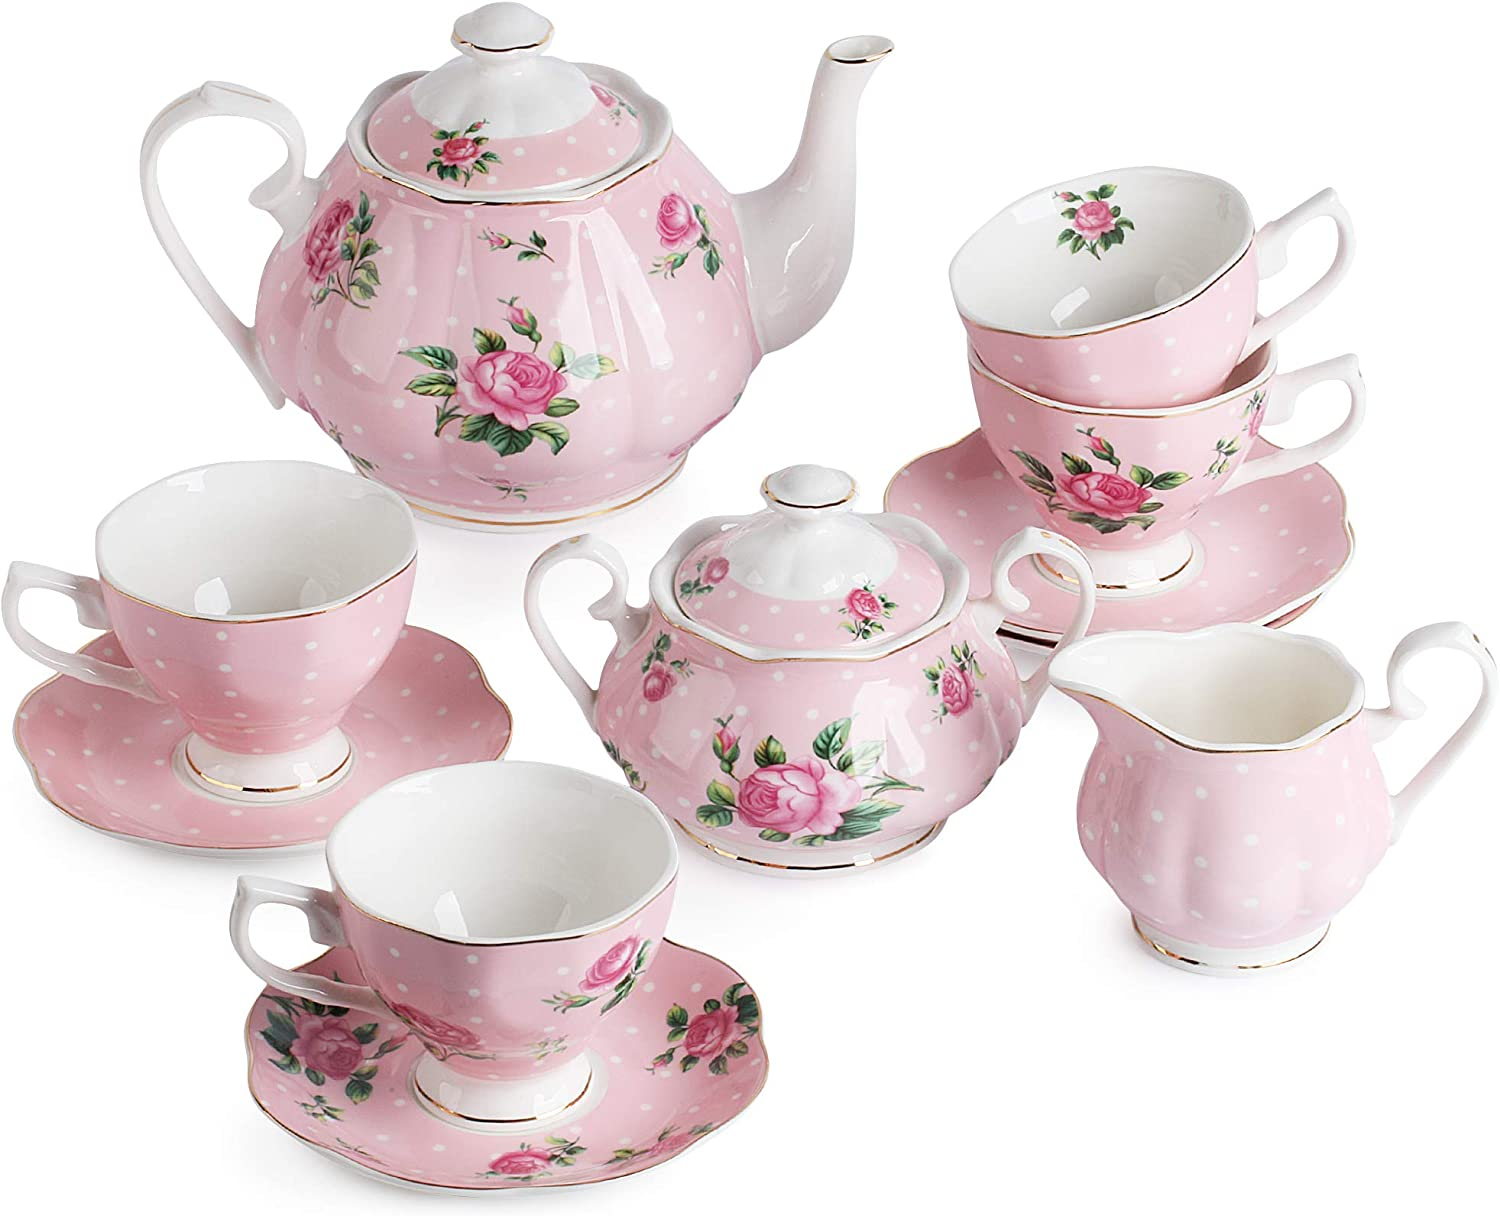 One of the most practical gift ideas for women over 40 is a tea set that is all pink and floral. Her friends are definitely going to ask her about it because it's just so gorgeous.